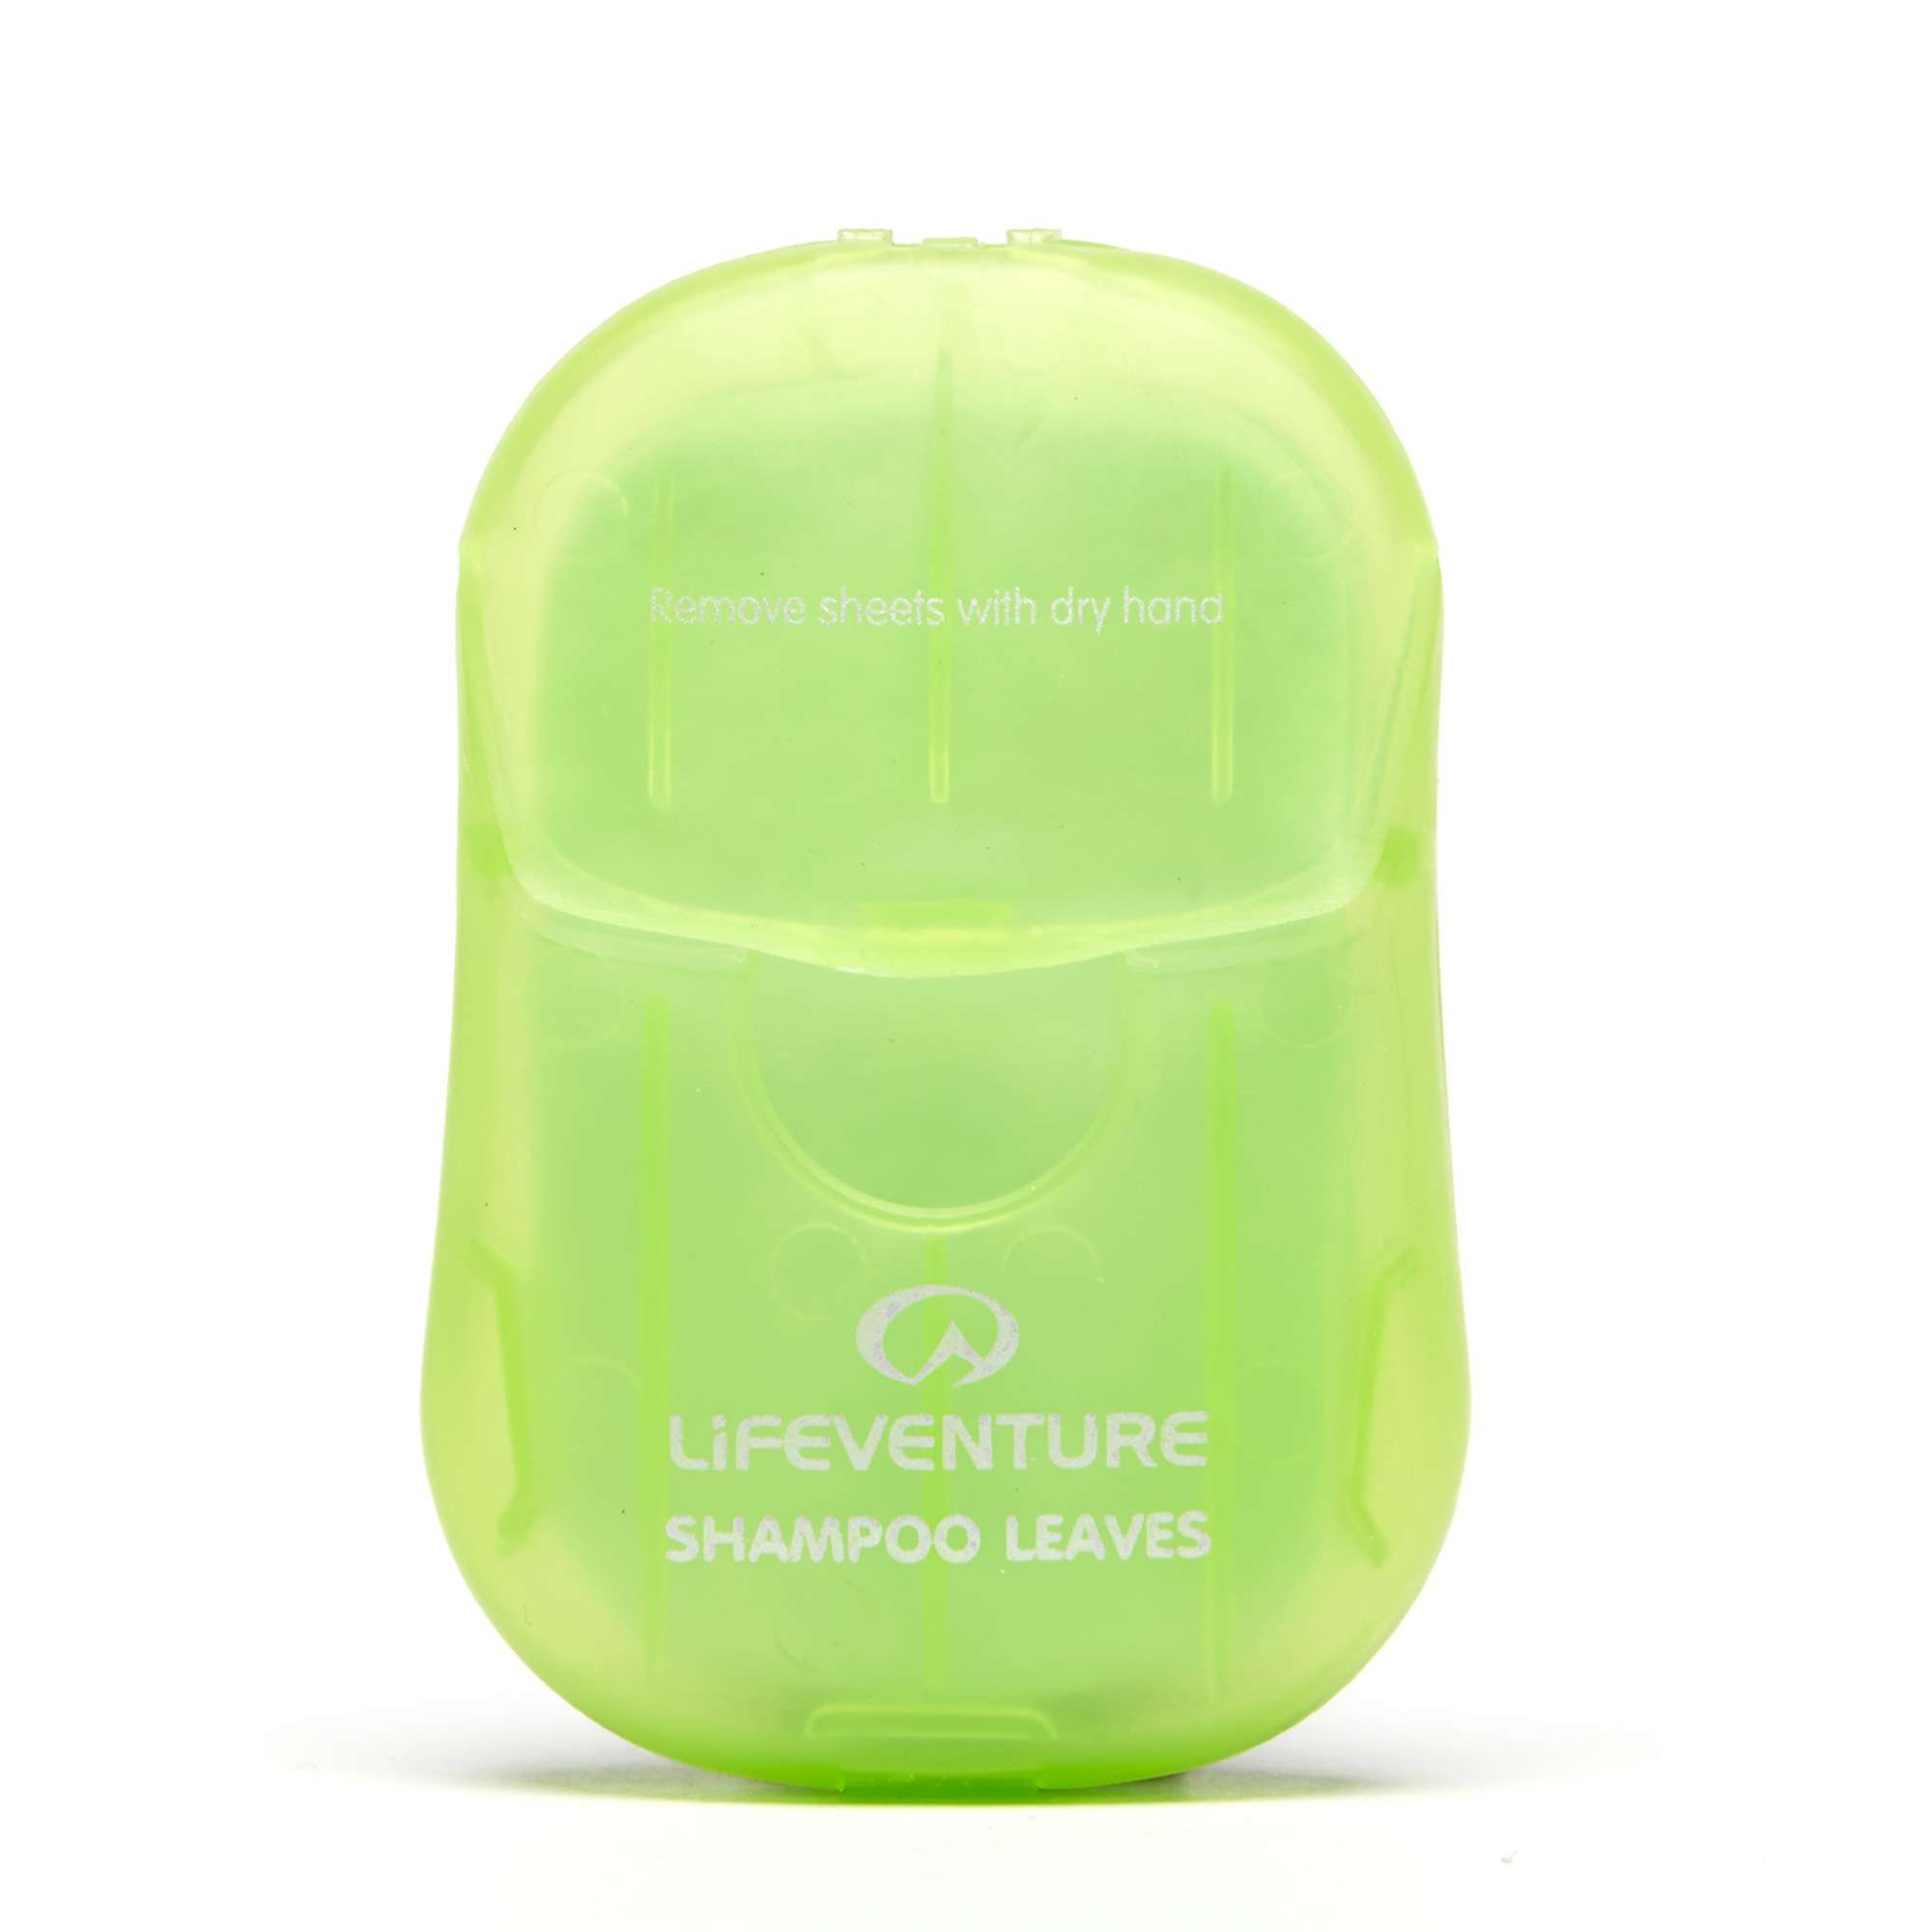 LIFEVENTURE Shampoo Leaves